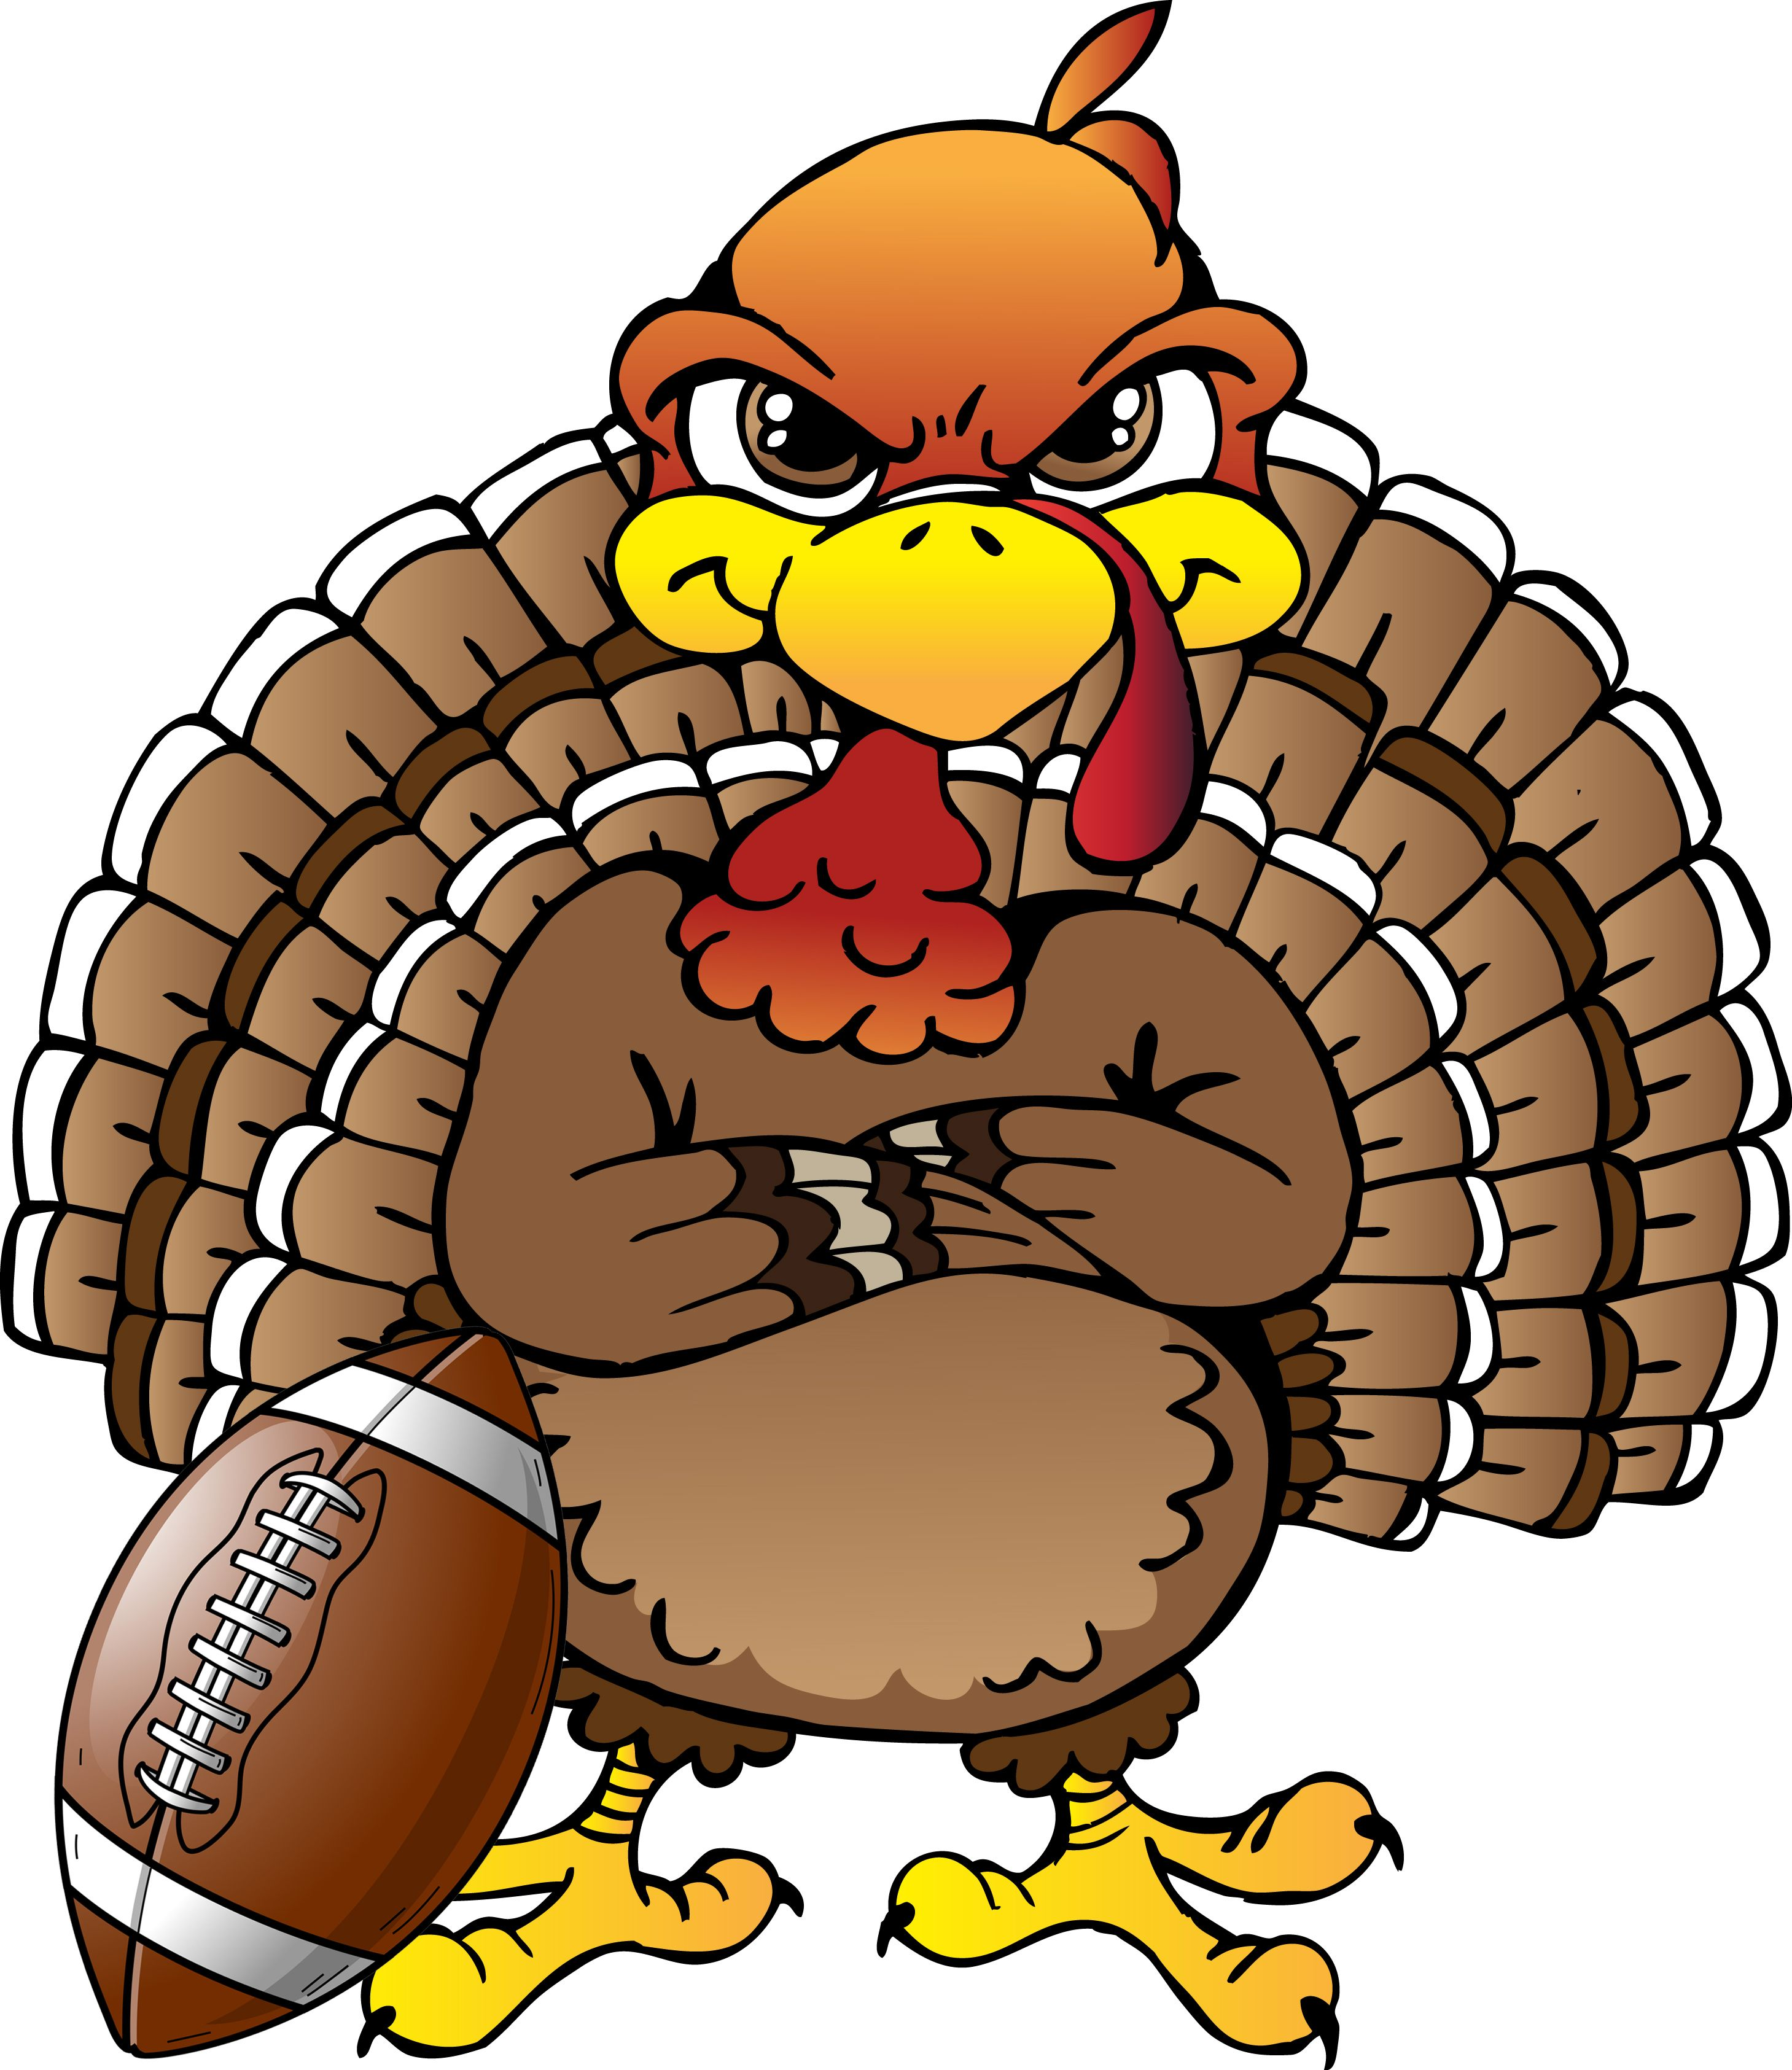 Feast clipart happy family. Thanksgiving day nfl picks